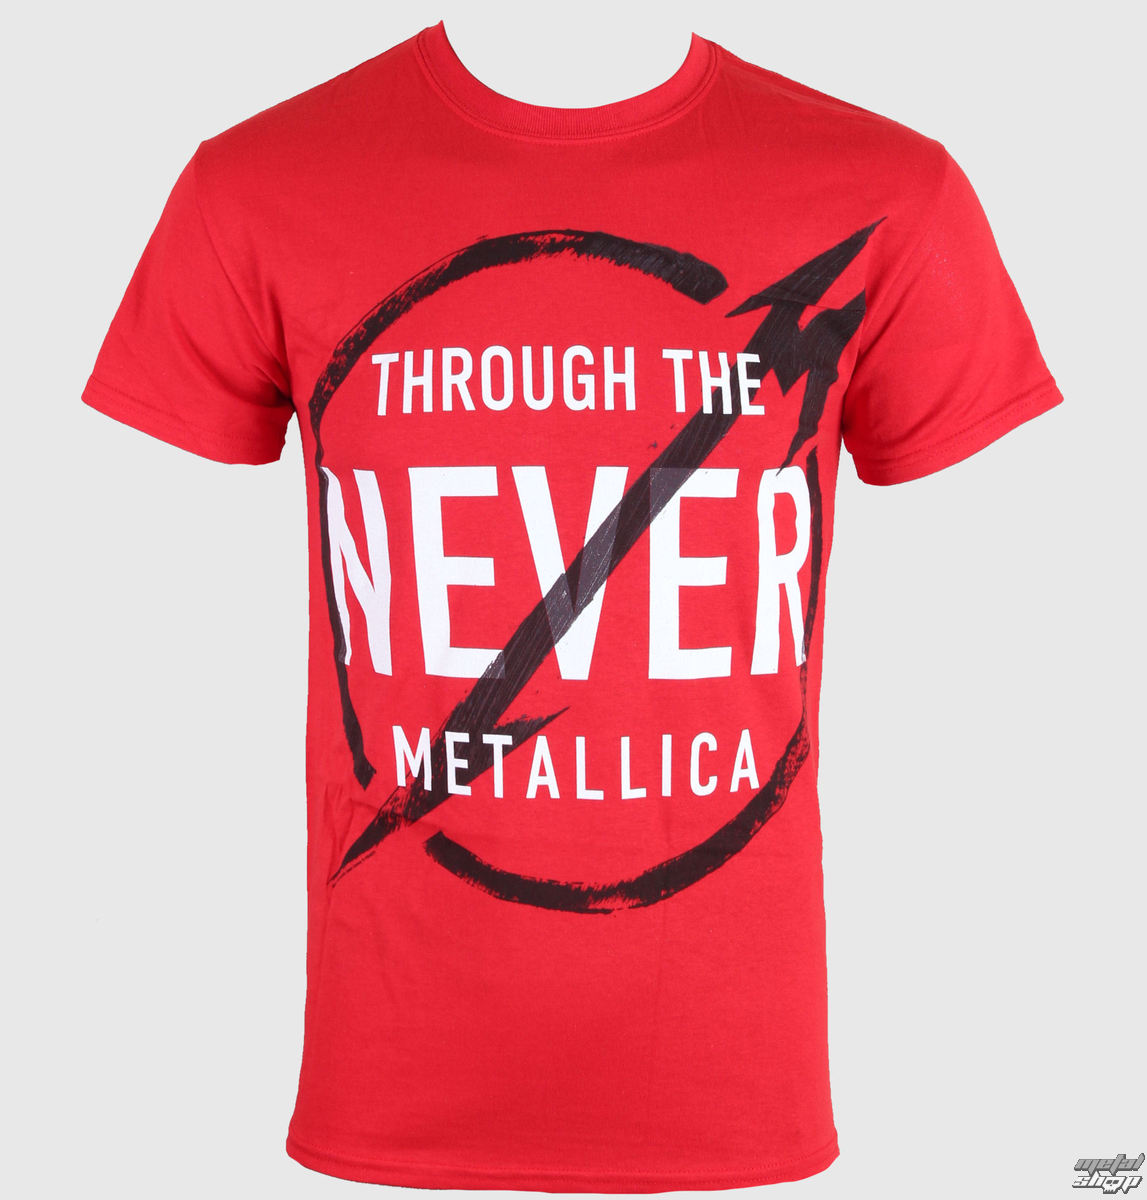 herren t shirt metallica never live nation gr e xxl ebay. Black Bedroom Furniture Sets. Home Design Ideas